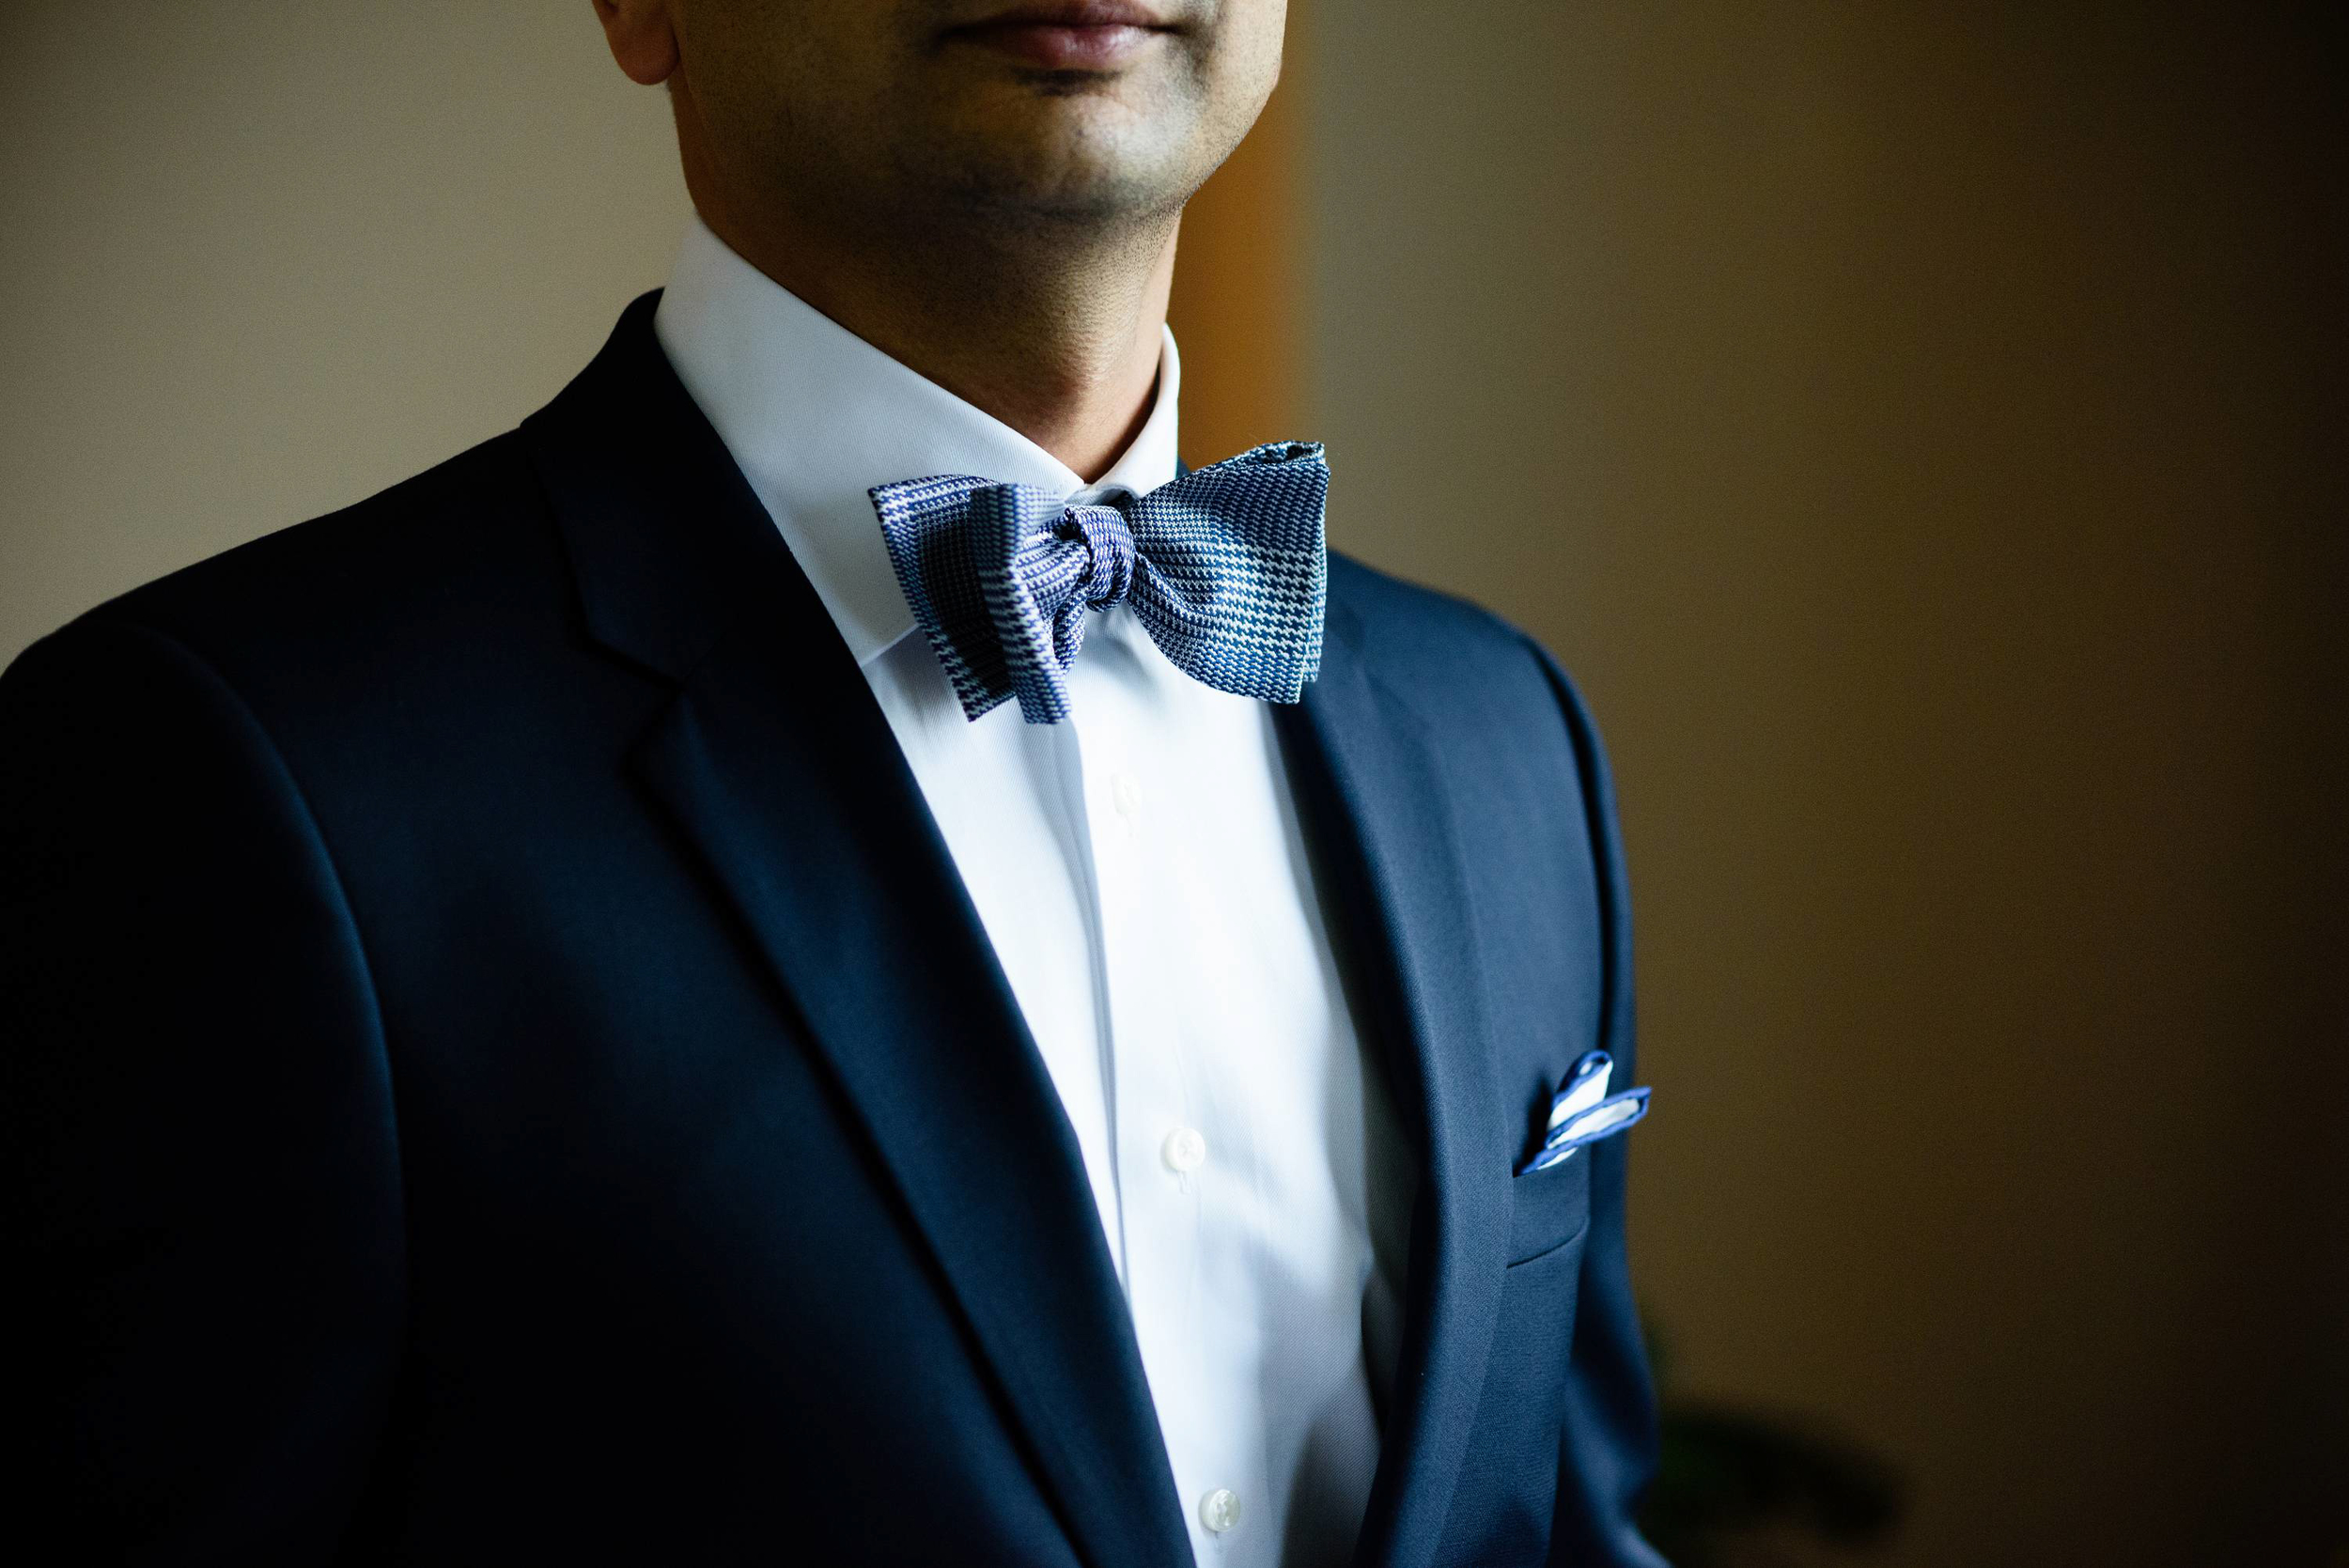 It's in the details! This stunning and sharp bow tie of the groom caught our attention and took this photograph when he was getting ready for the reception.